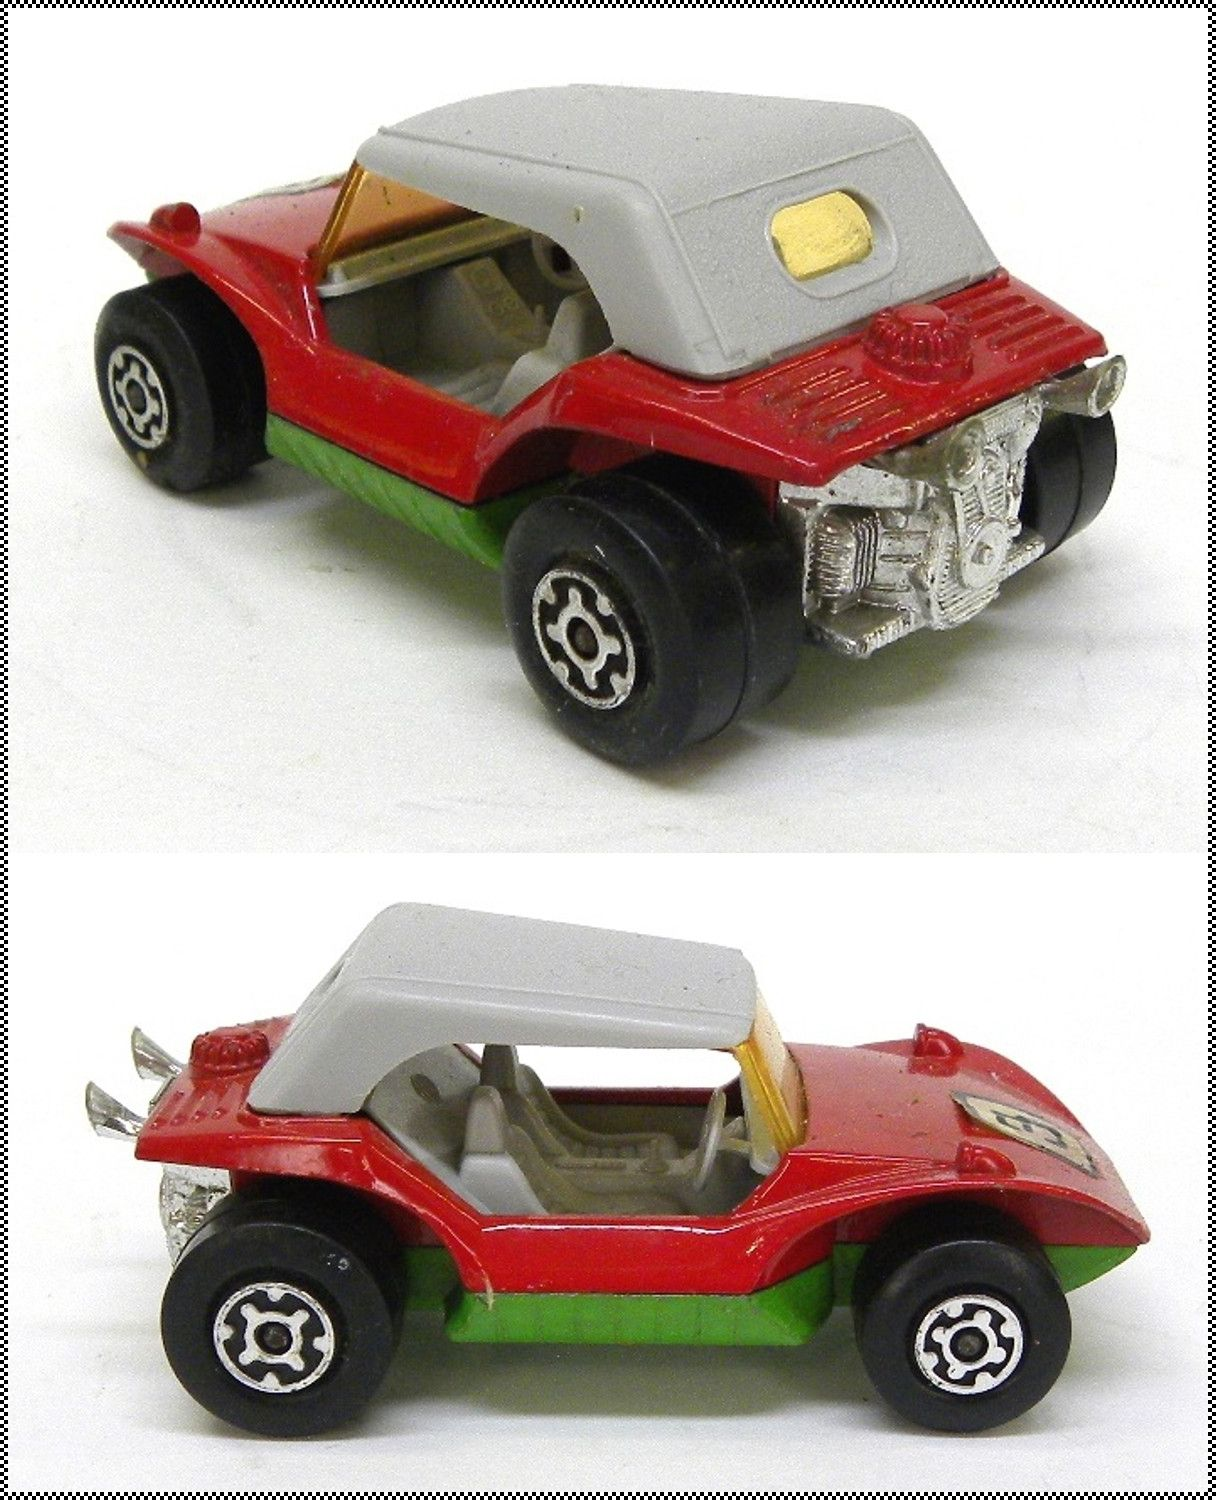 Speed Kings K 37 Sand Cat Dune Buggy by Lesney, 1972 Vintage Die Cast